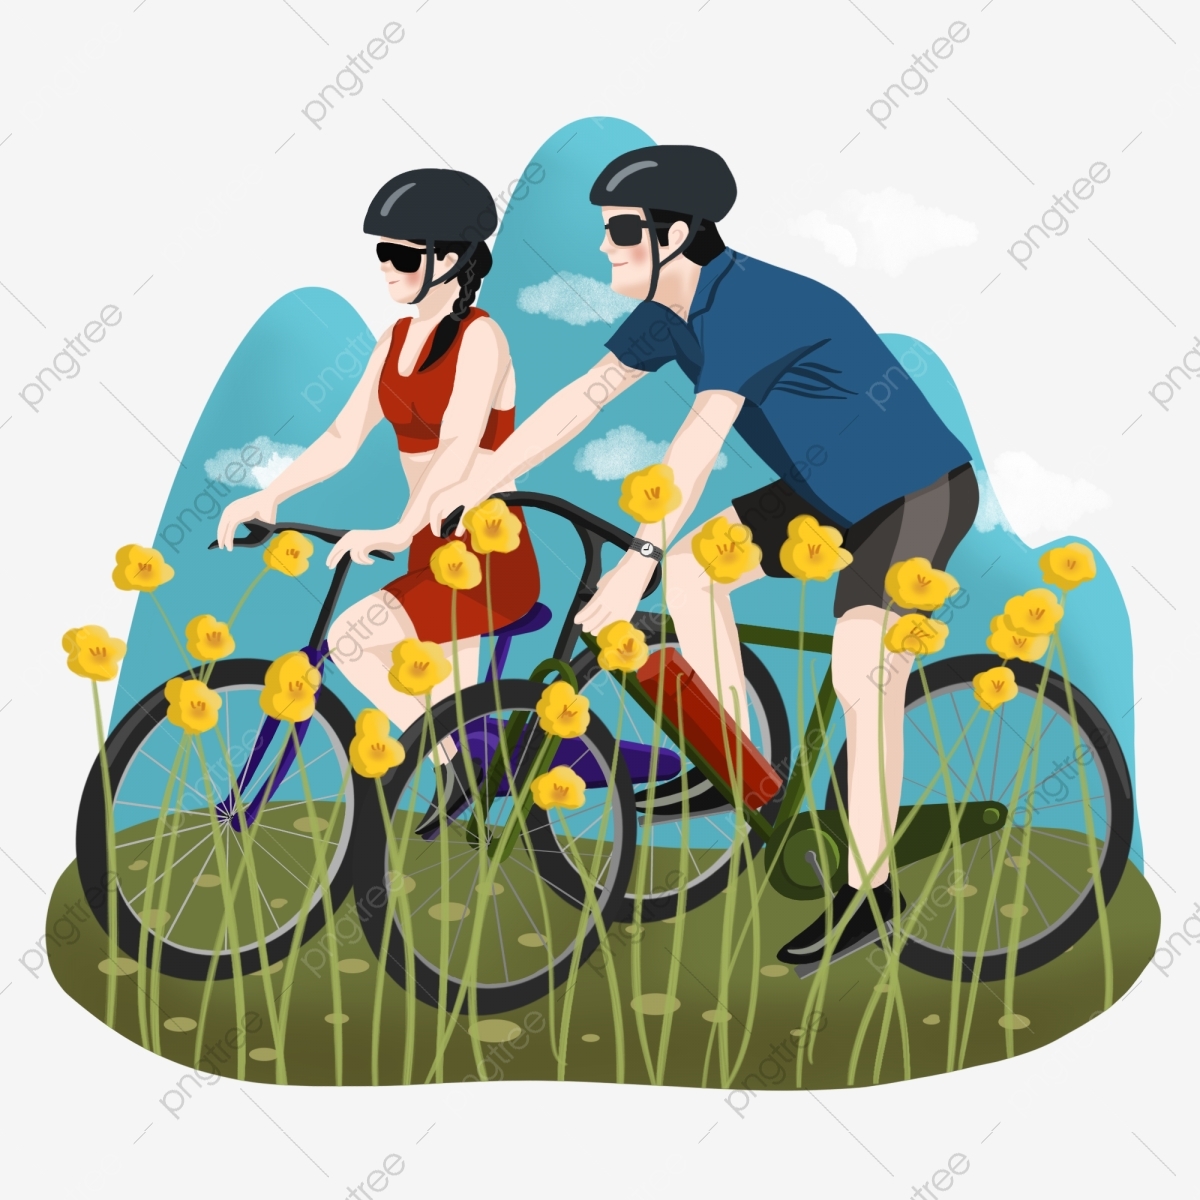 Cycling, Sketch, Blue PNG Transparent Image and Clipart for Free